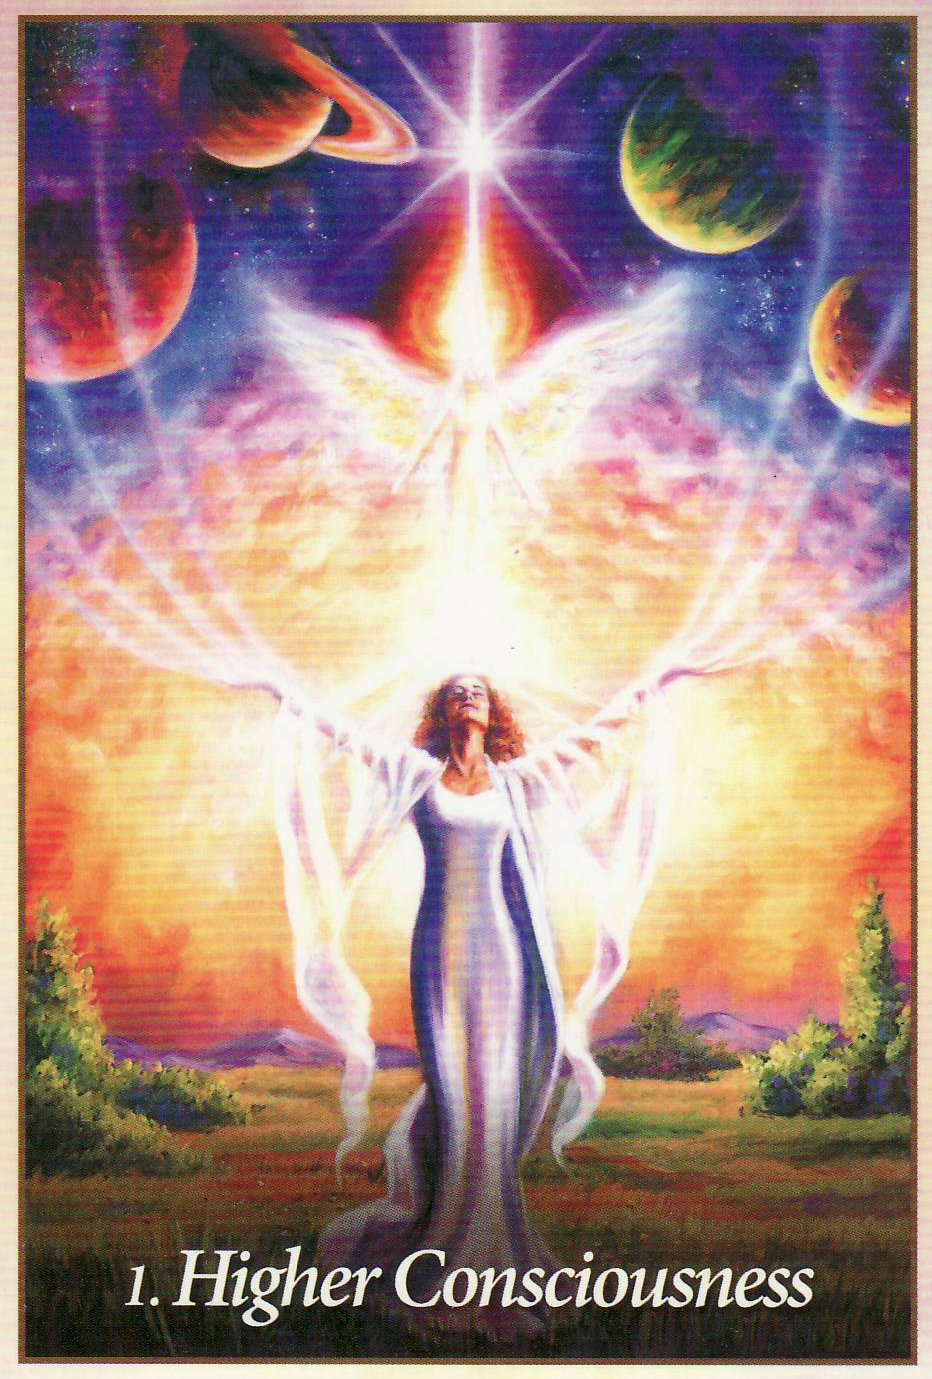 Oracle Outlook: Angel Card Reading For August 1-7, 2016